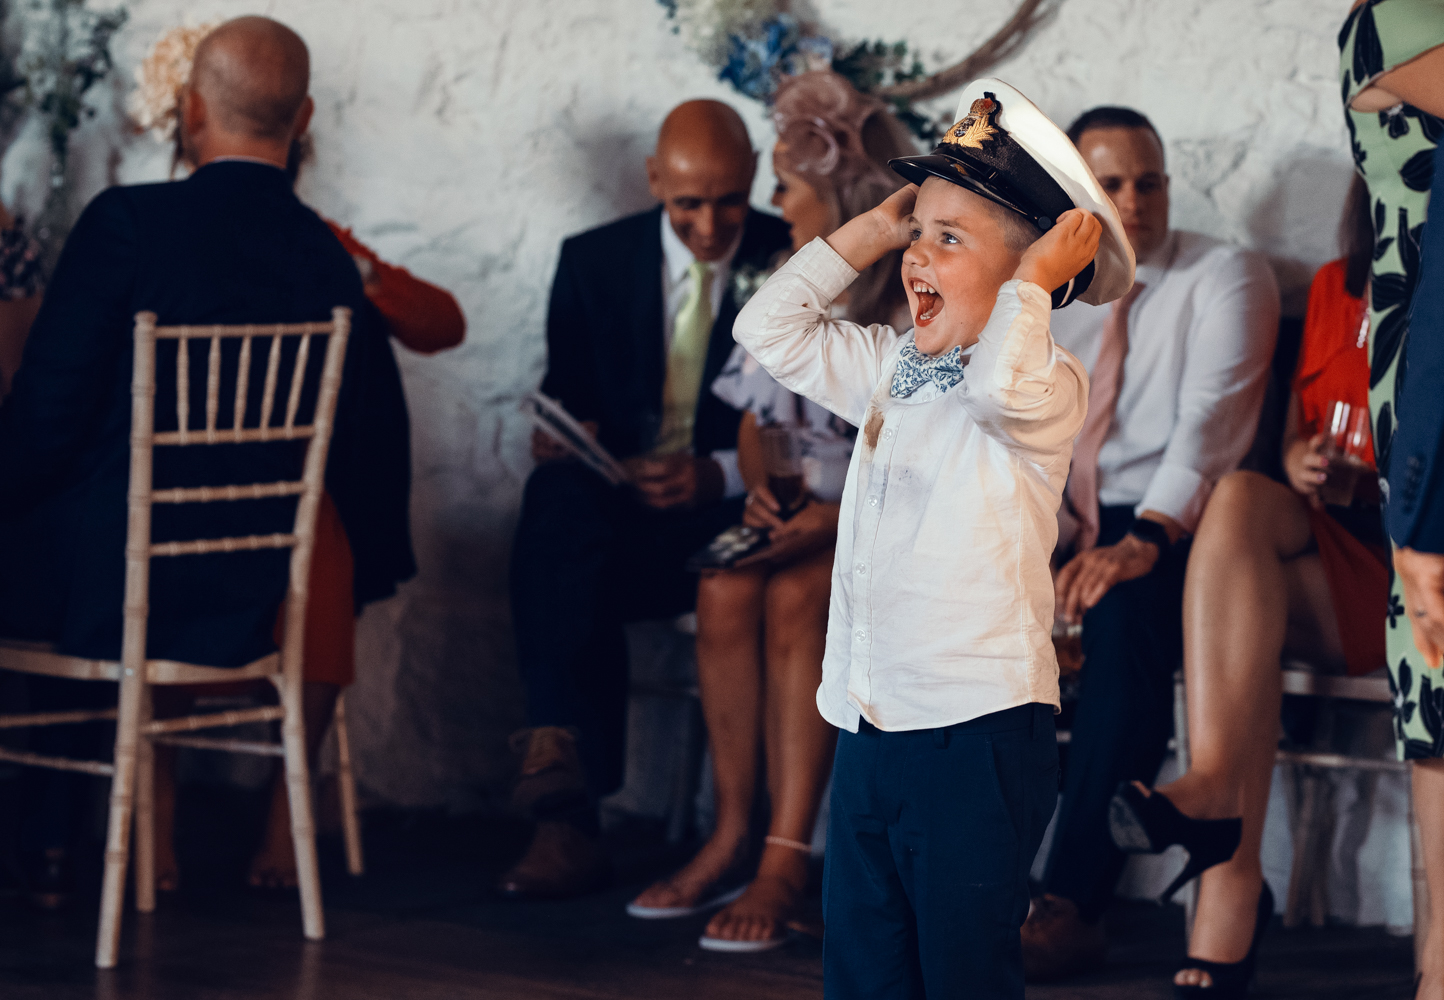 A young lad tries on a naval hat for size during the evening reception